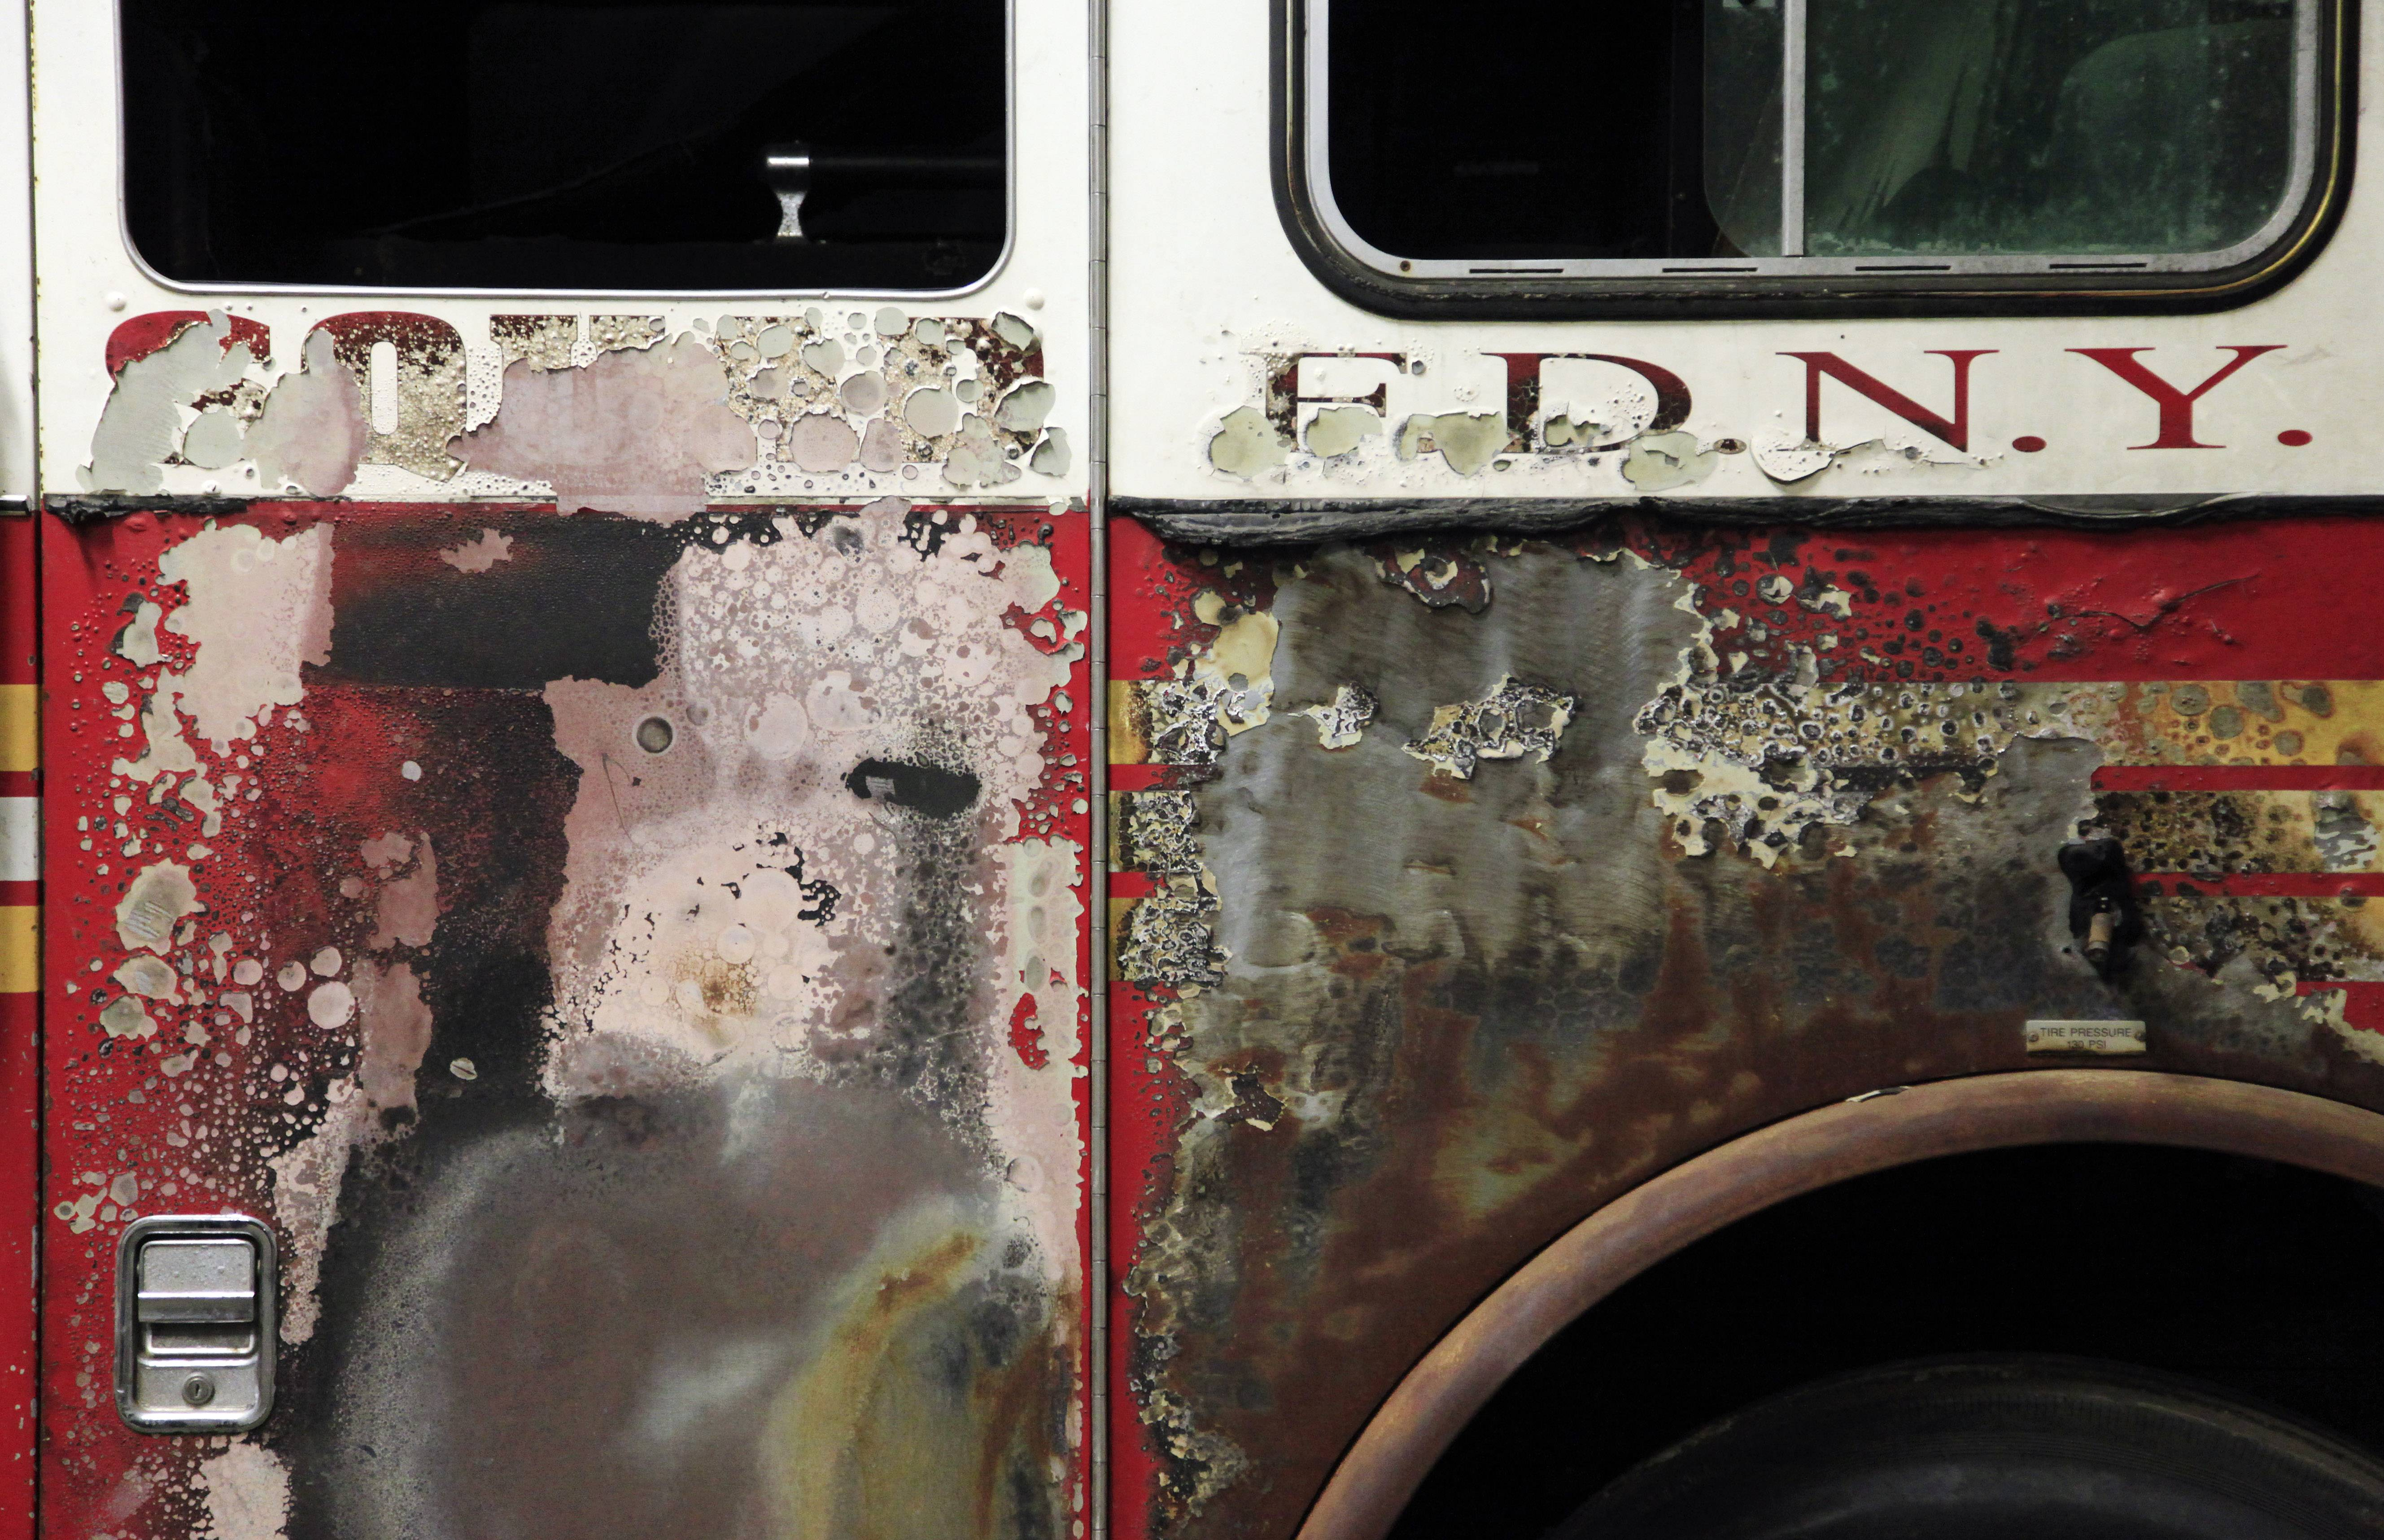 The fire-scorched cab of a New York City Fire Department truck, damaged in the attacks of Sept. 11, 2001, will be on display in the 9/11 museum that will be dedicated Thursday, May 15, 2014, in a ceremony attended by President Barack Obama. It will open to the public May 21.